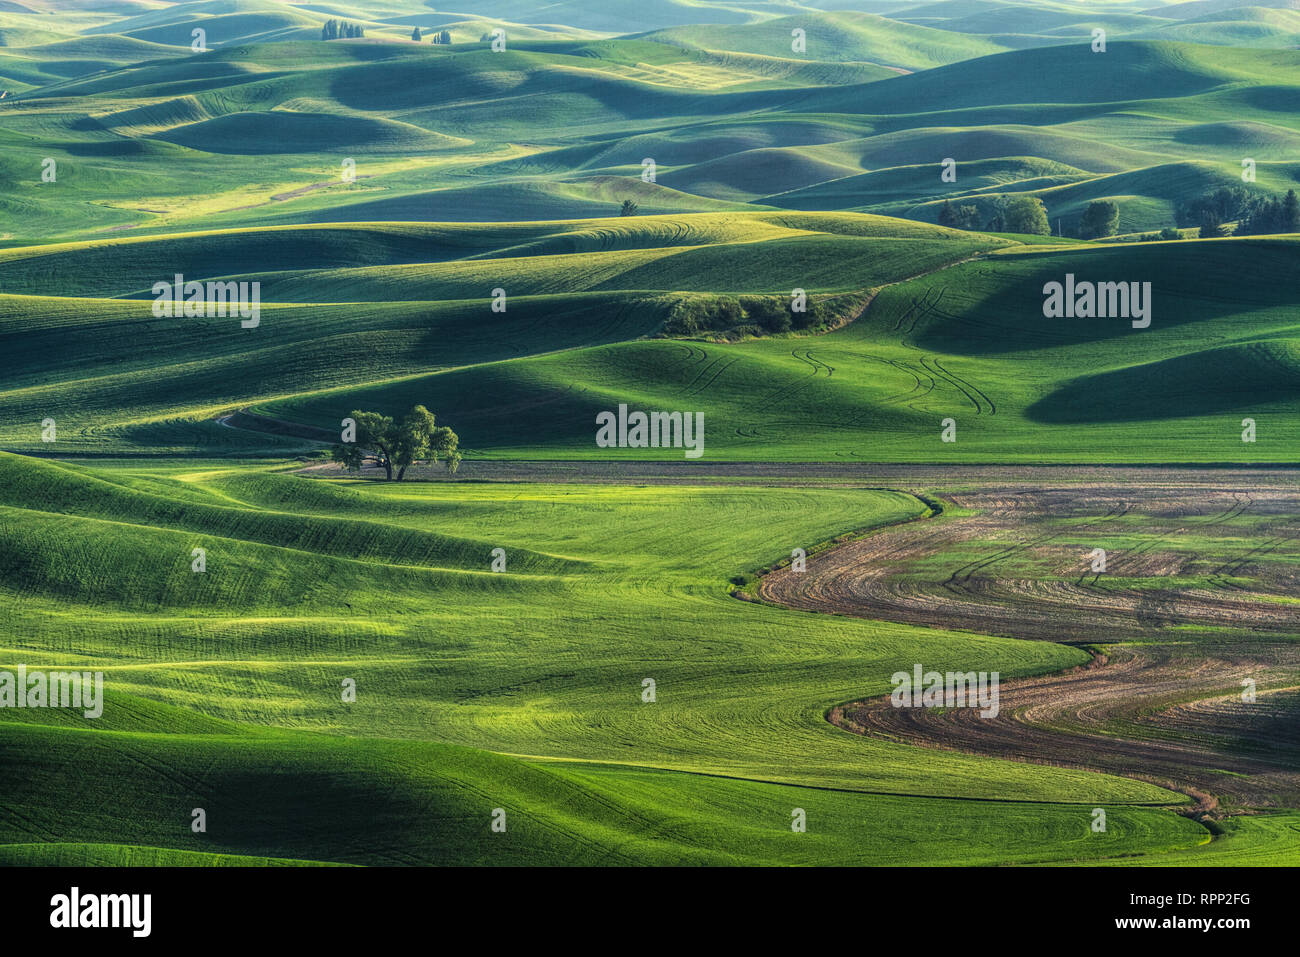 Spring is a favorite time to photograph the Palouse in Eastern Washington. The wildflowers are out on Steptoe Butte. All of the fields are lush and gr - Stock Image